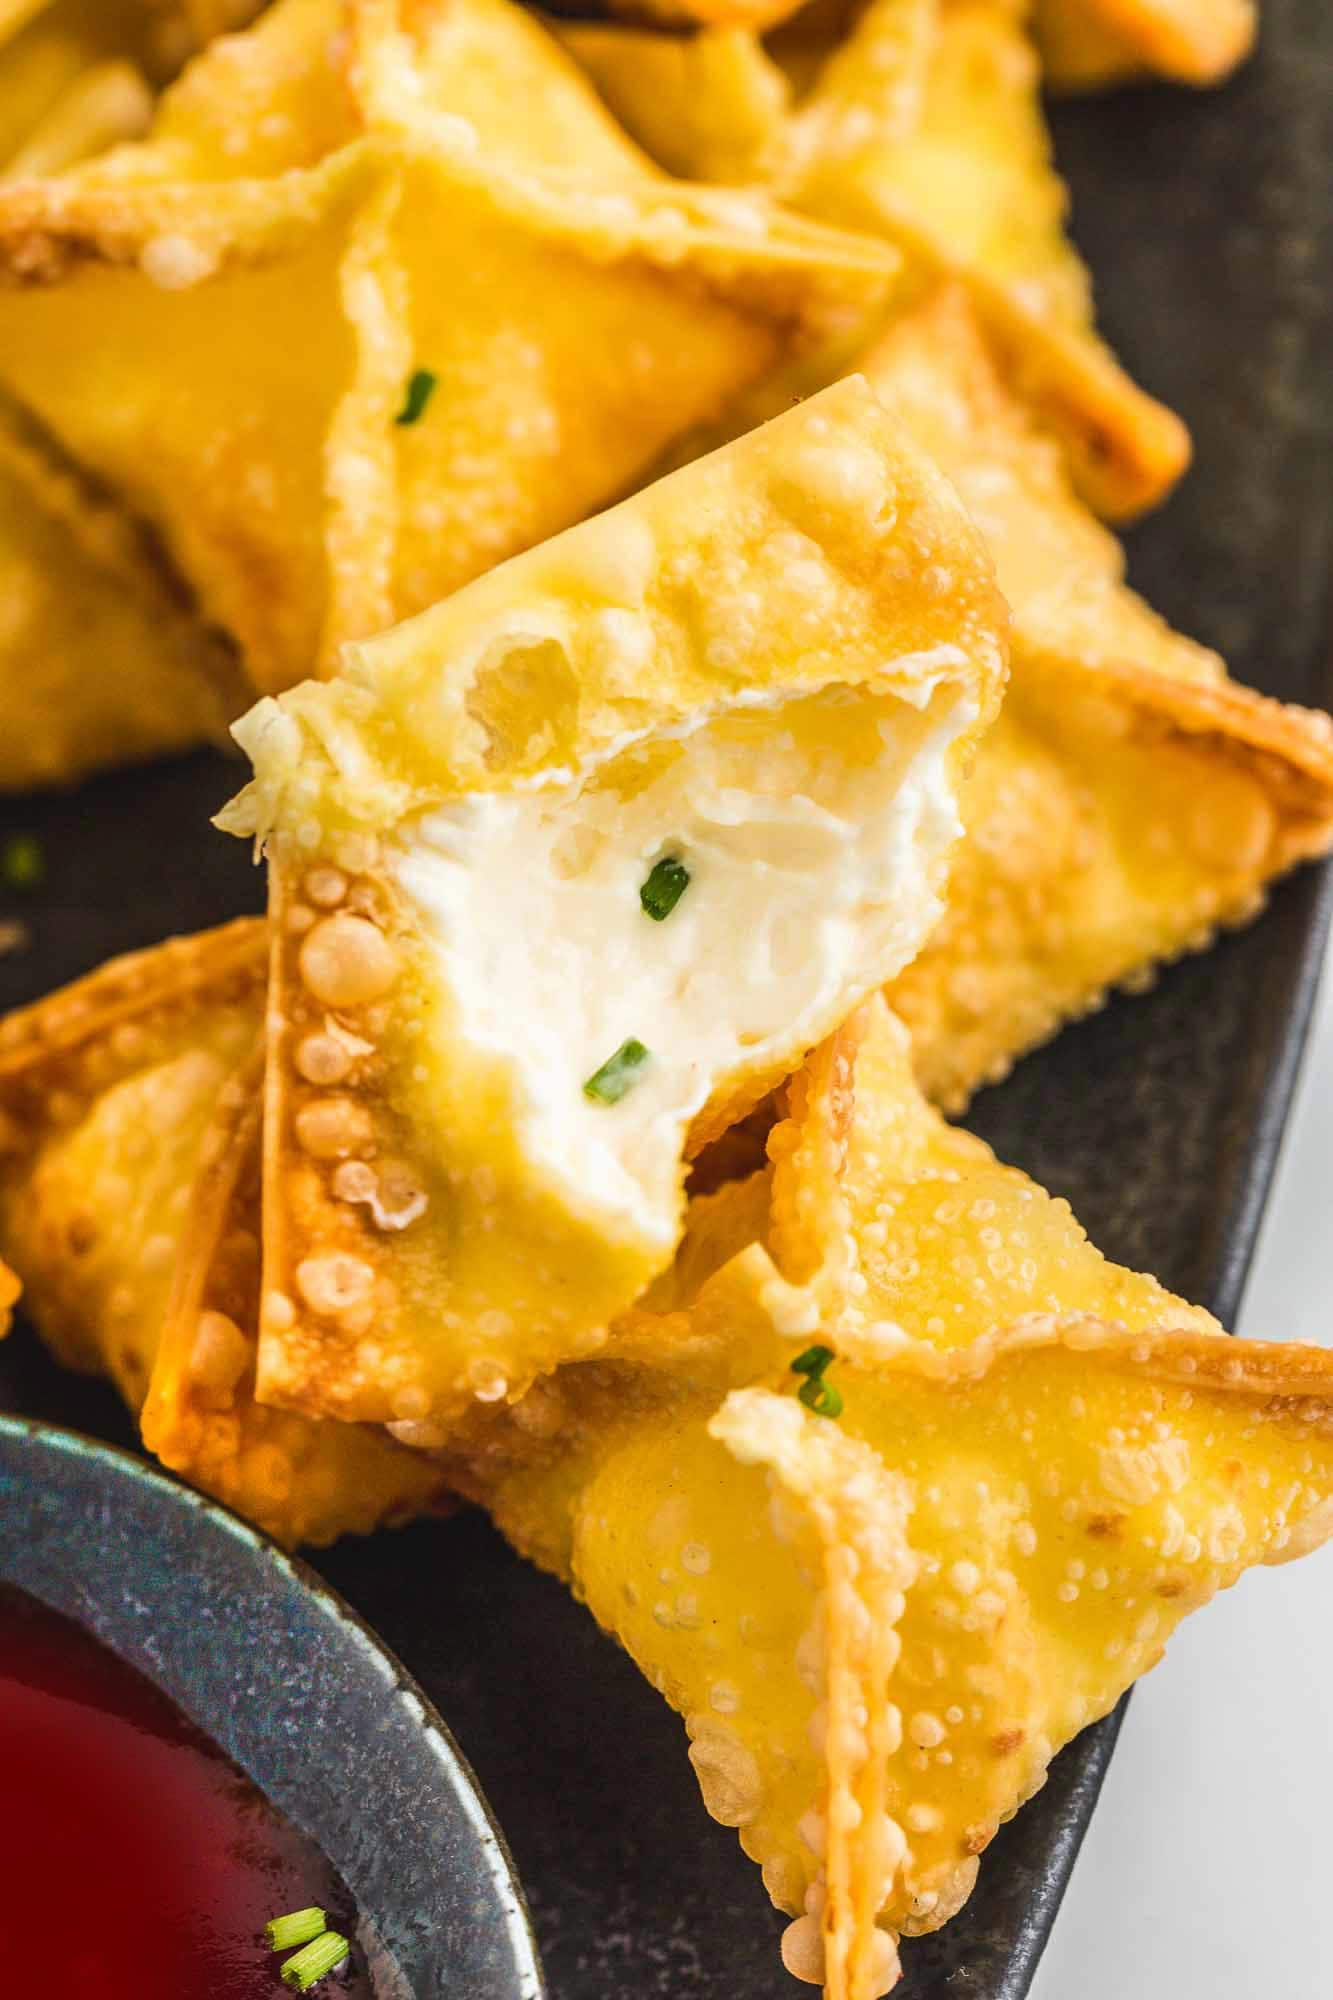 Cream cheese rangoons from the inside filled with soft cream cheese and chives